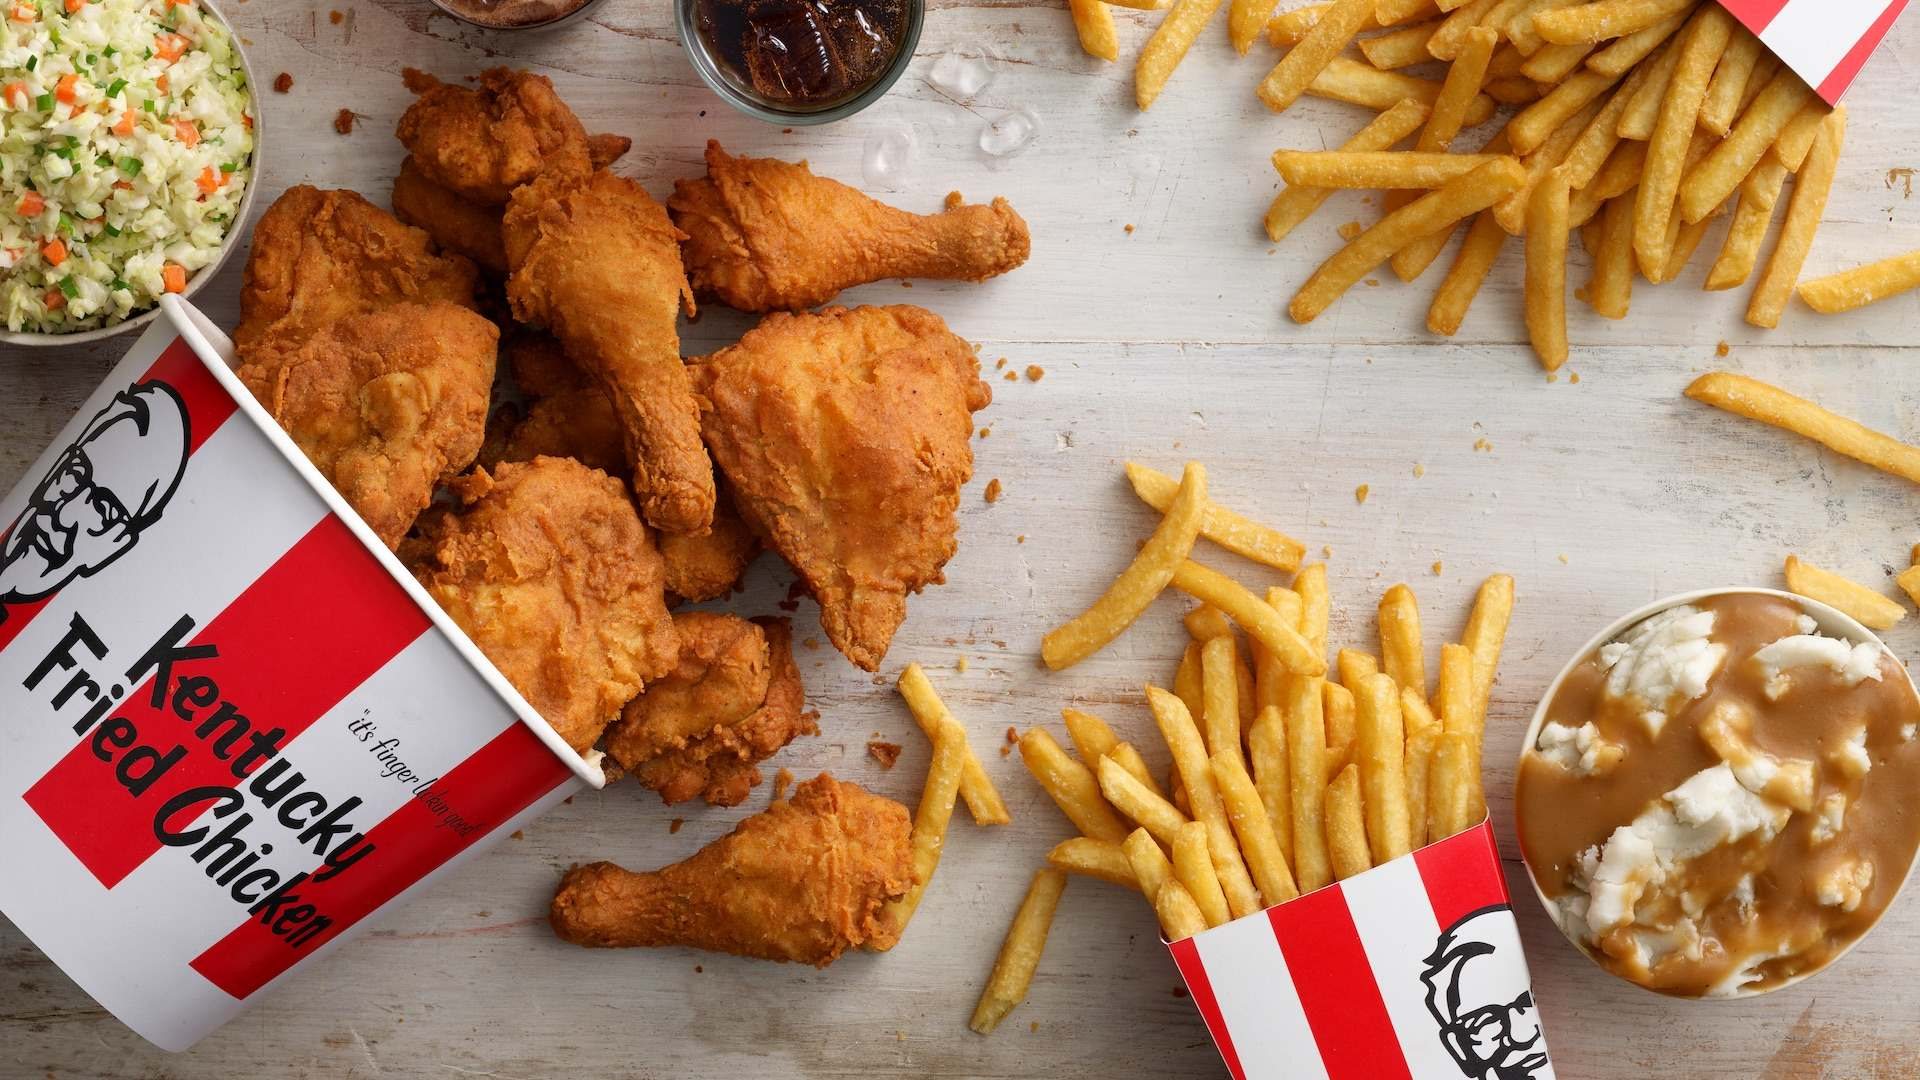 KFC Is Offering Free Delivery on Its Fried Chicken for the First Time This Easter